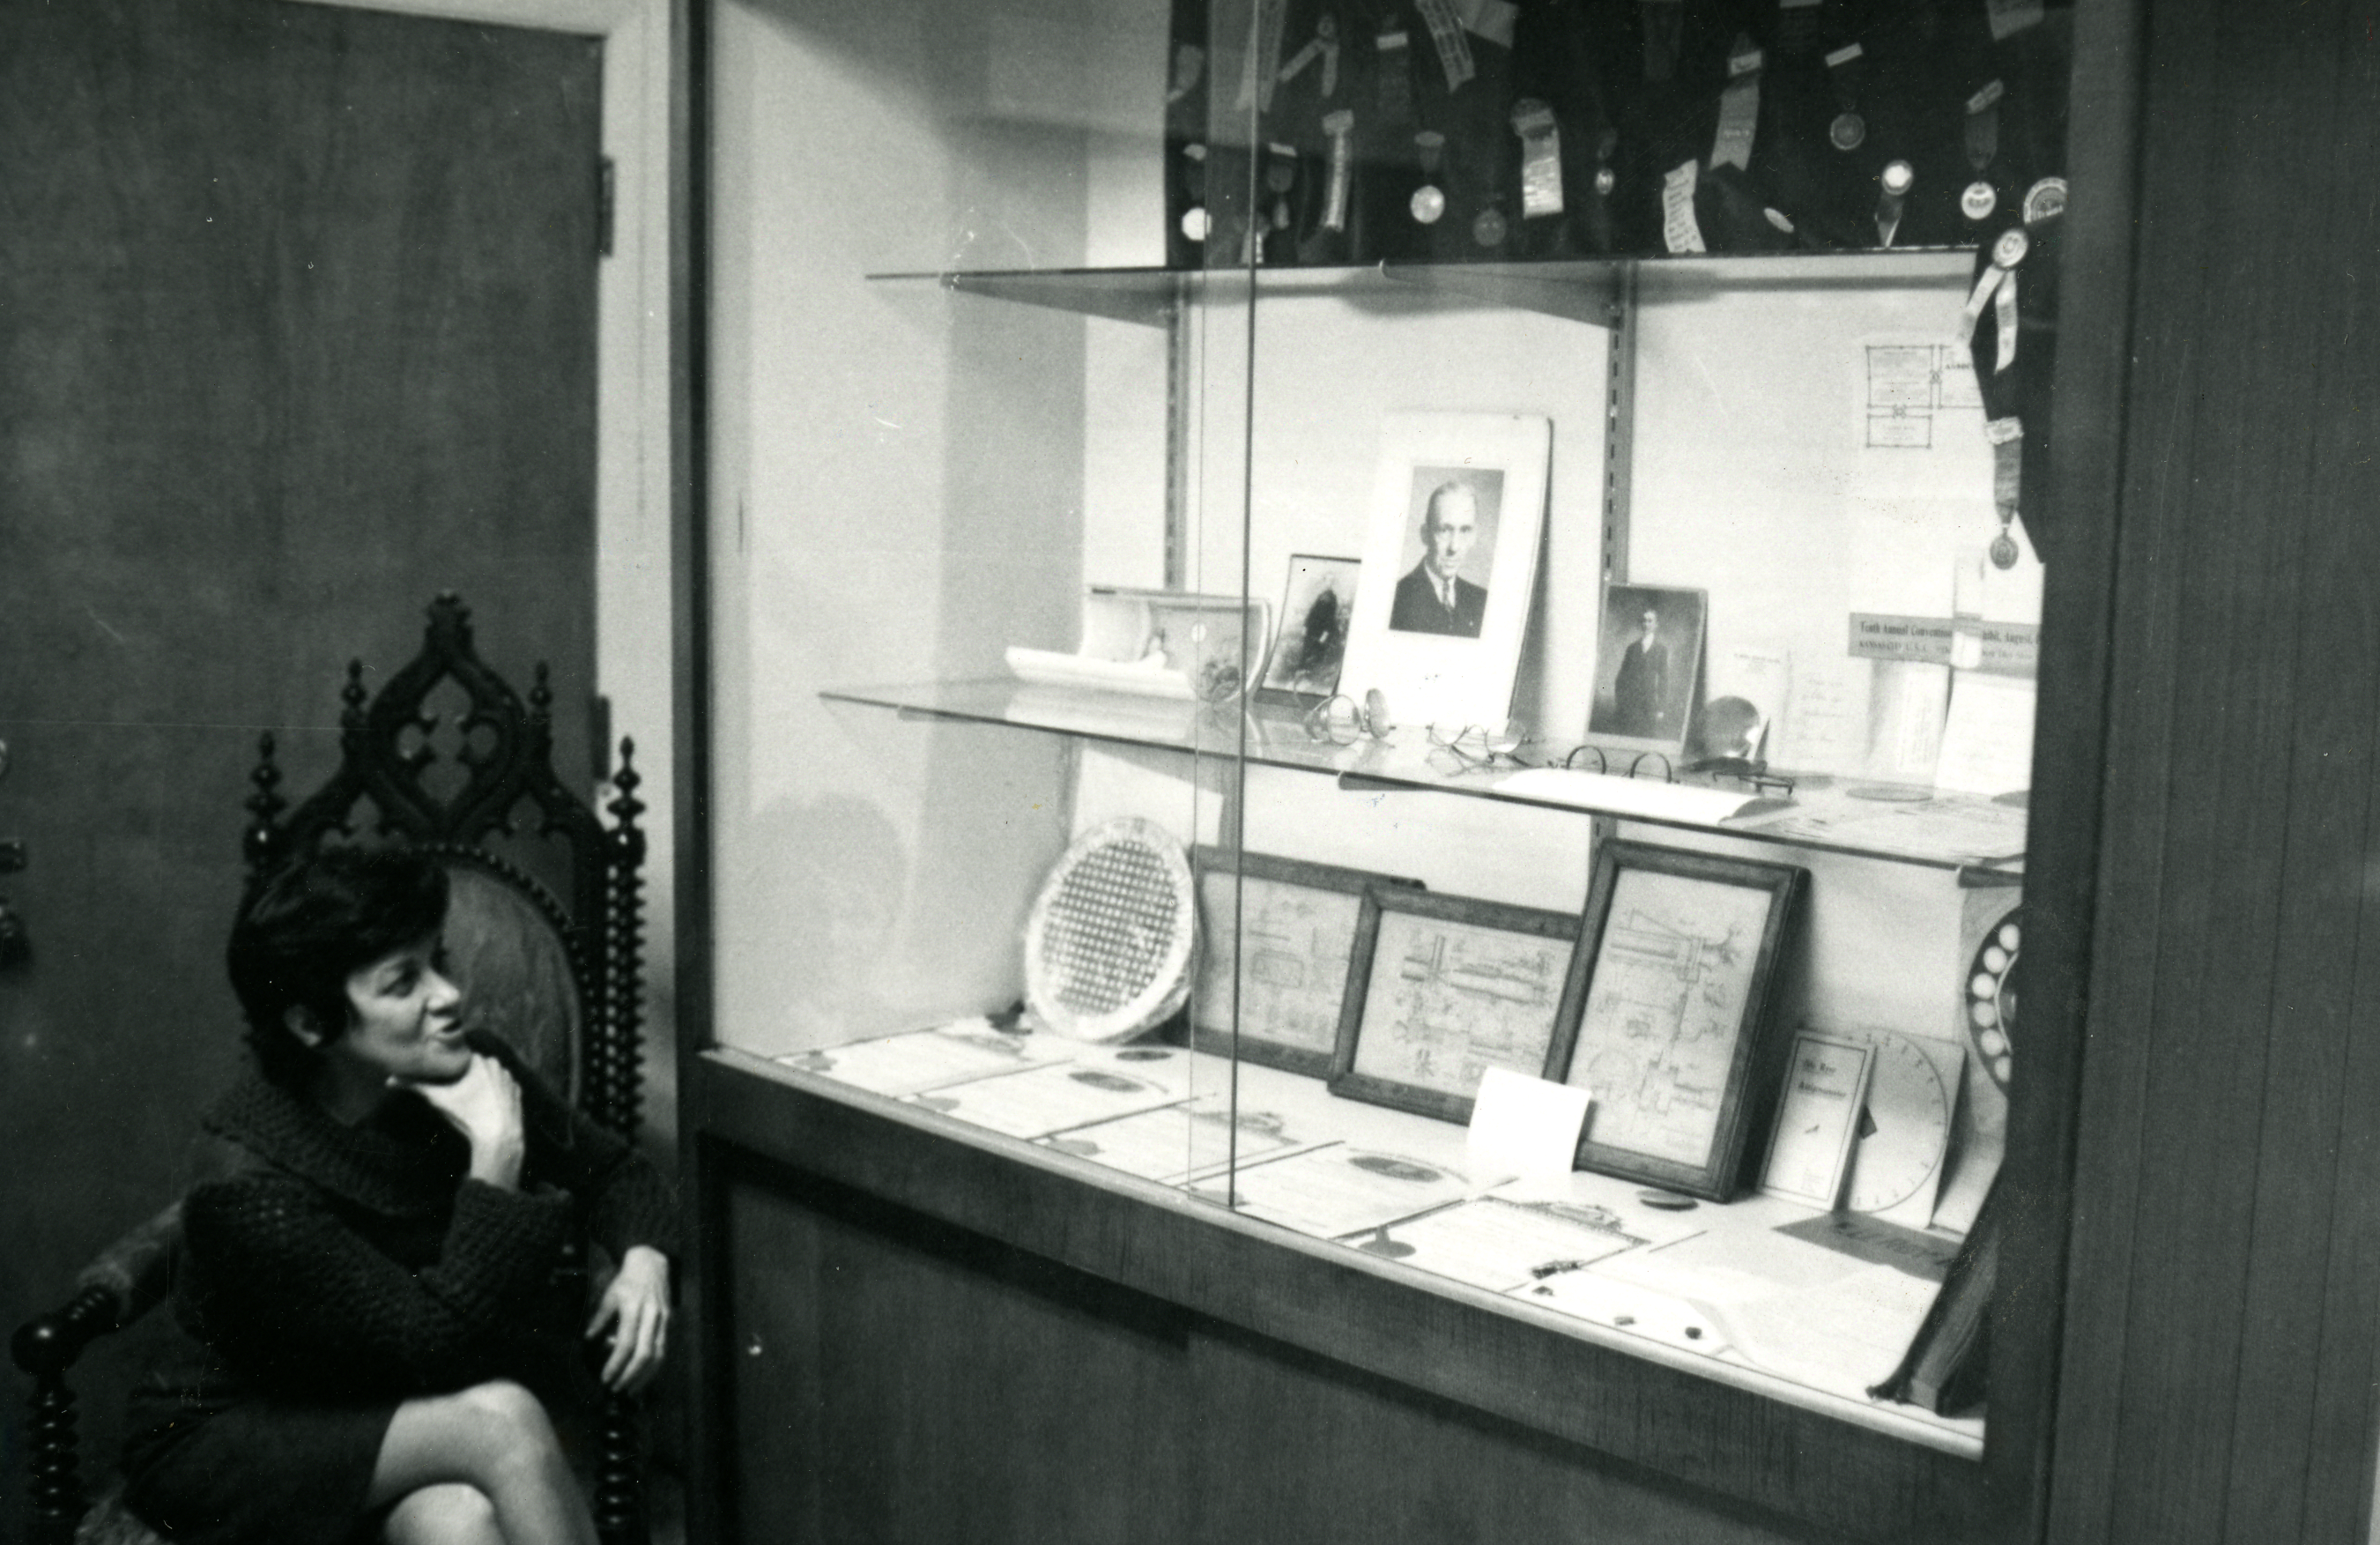 Maria Dablemont at the International Library, Archives & Museum of Optometry, 1971